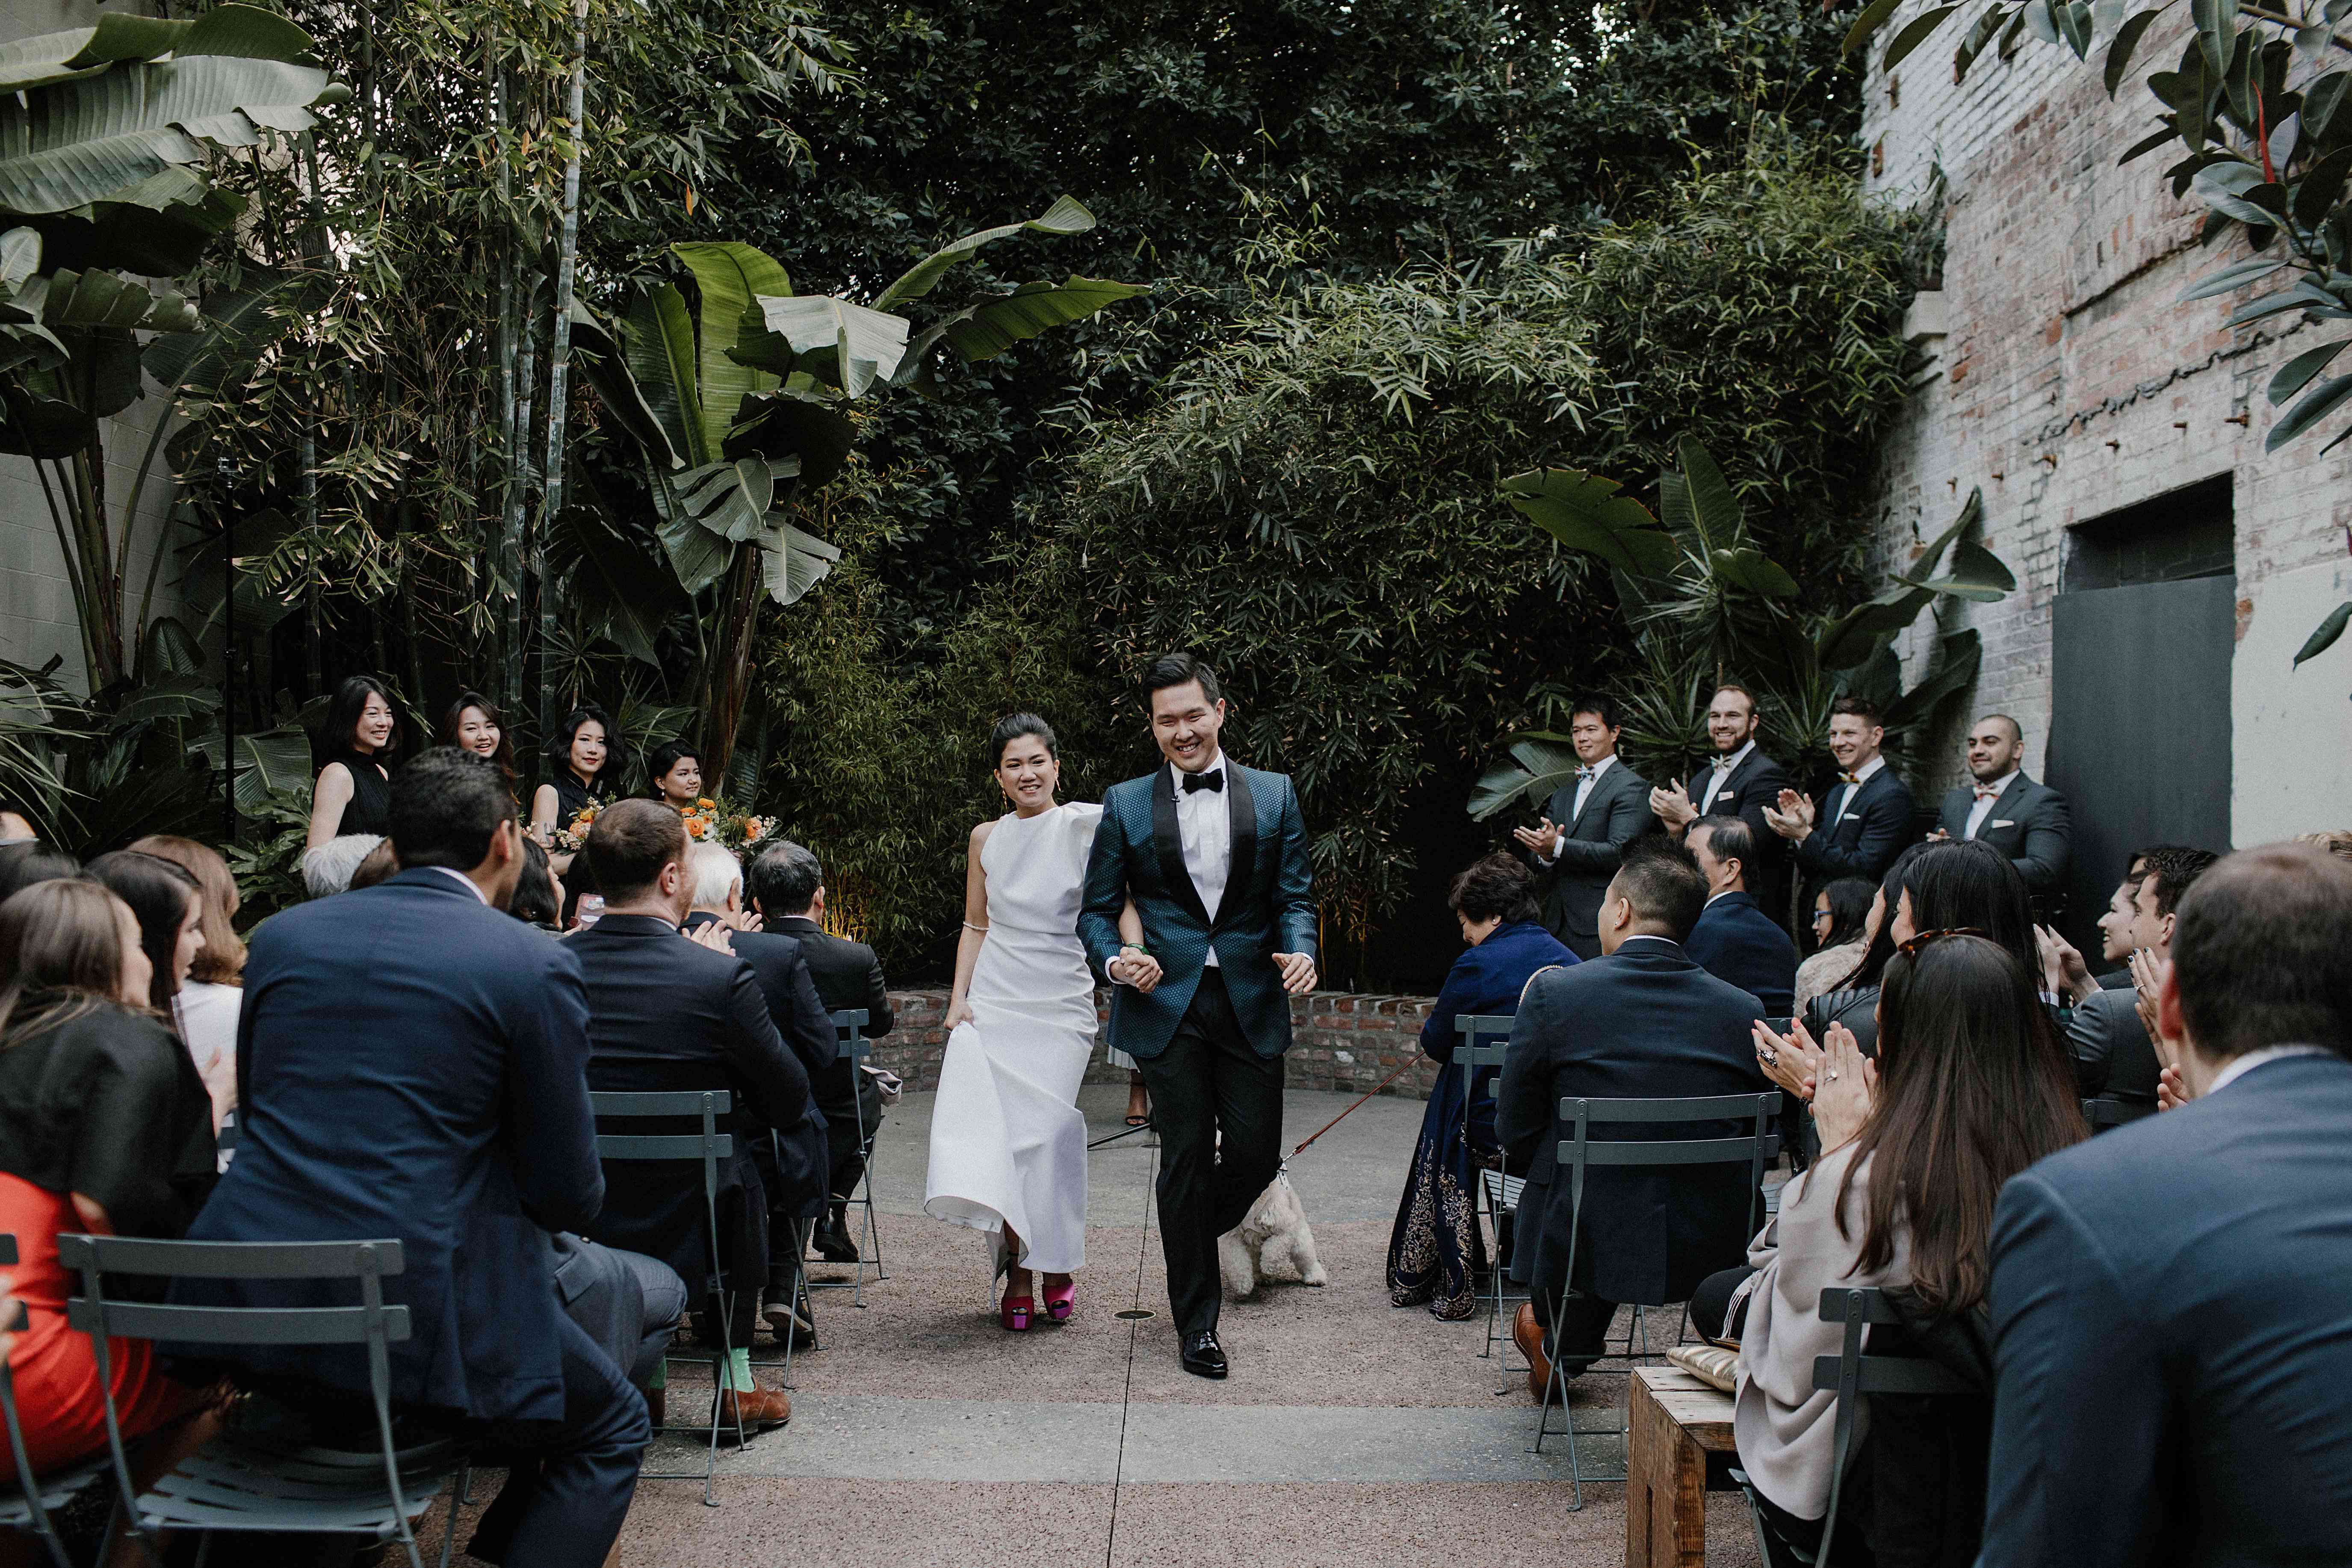 <p>Bride and groom recessional</p><br><br>